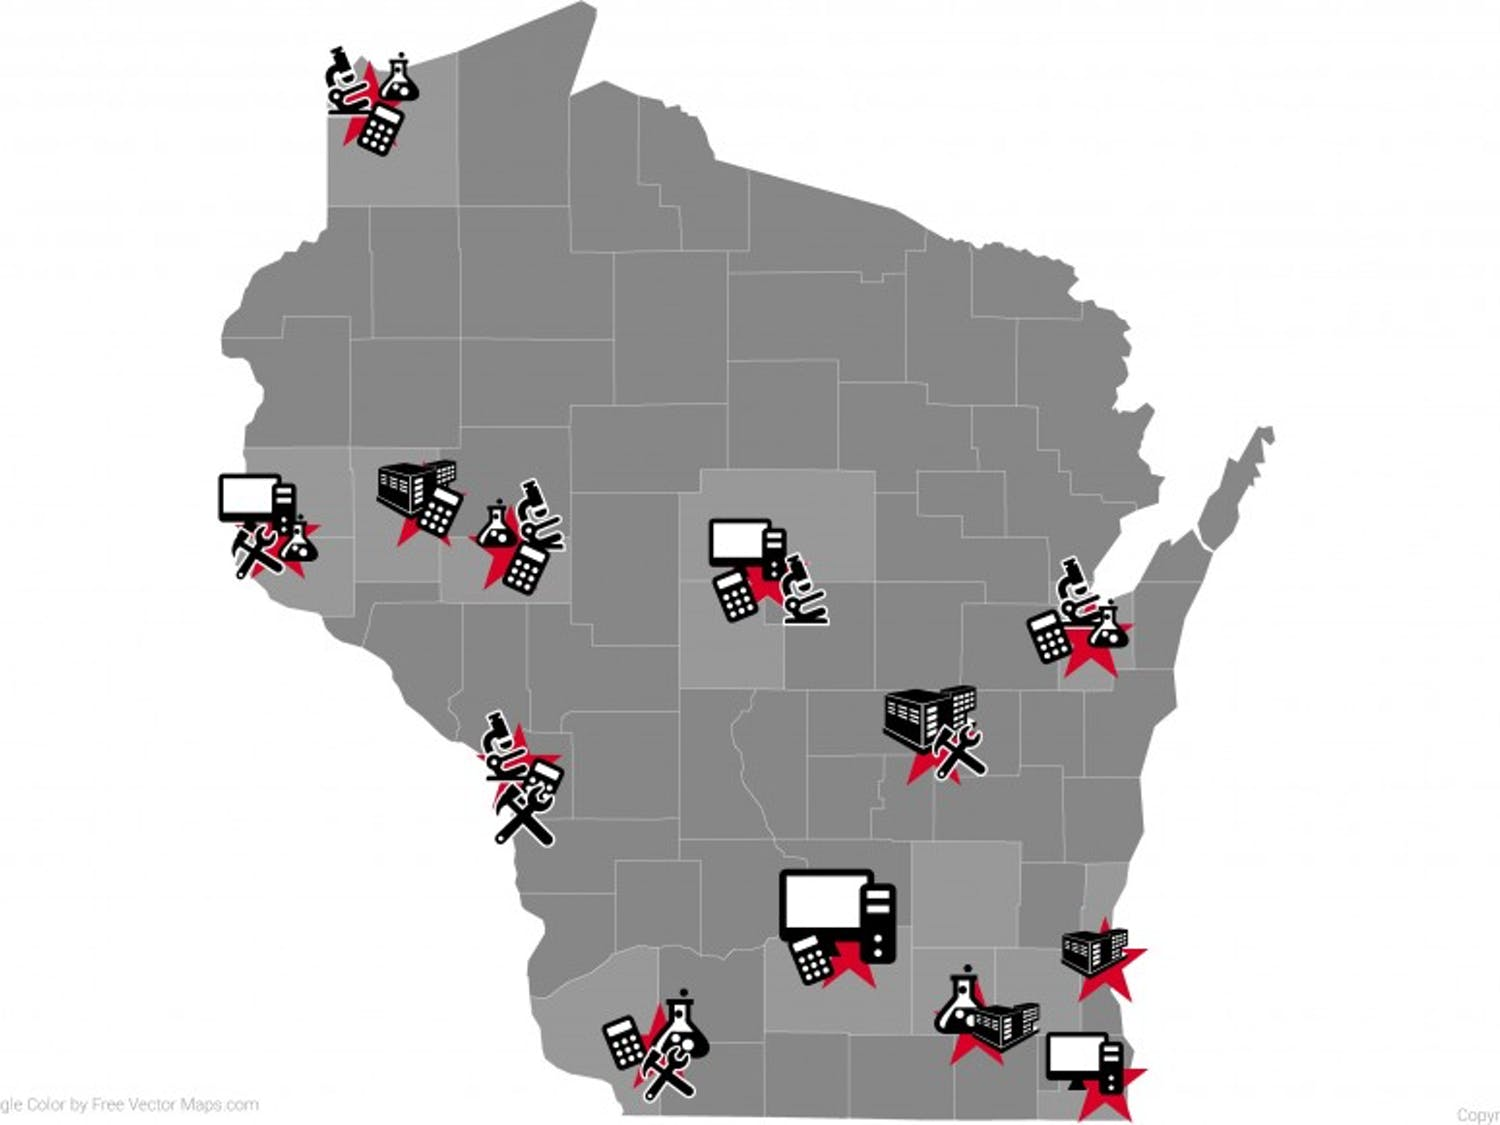 UW System STEM programs may provide stepping stones to success following graduation